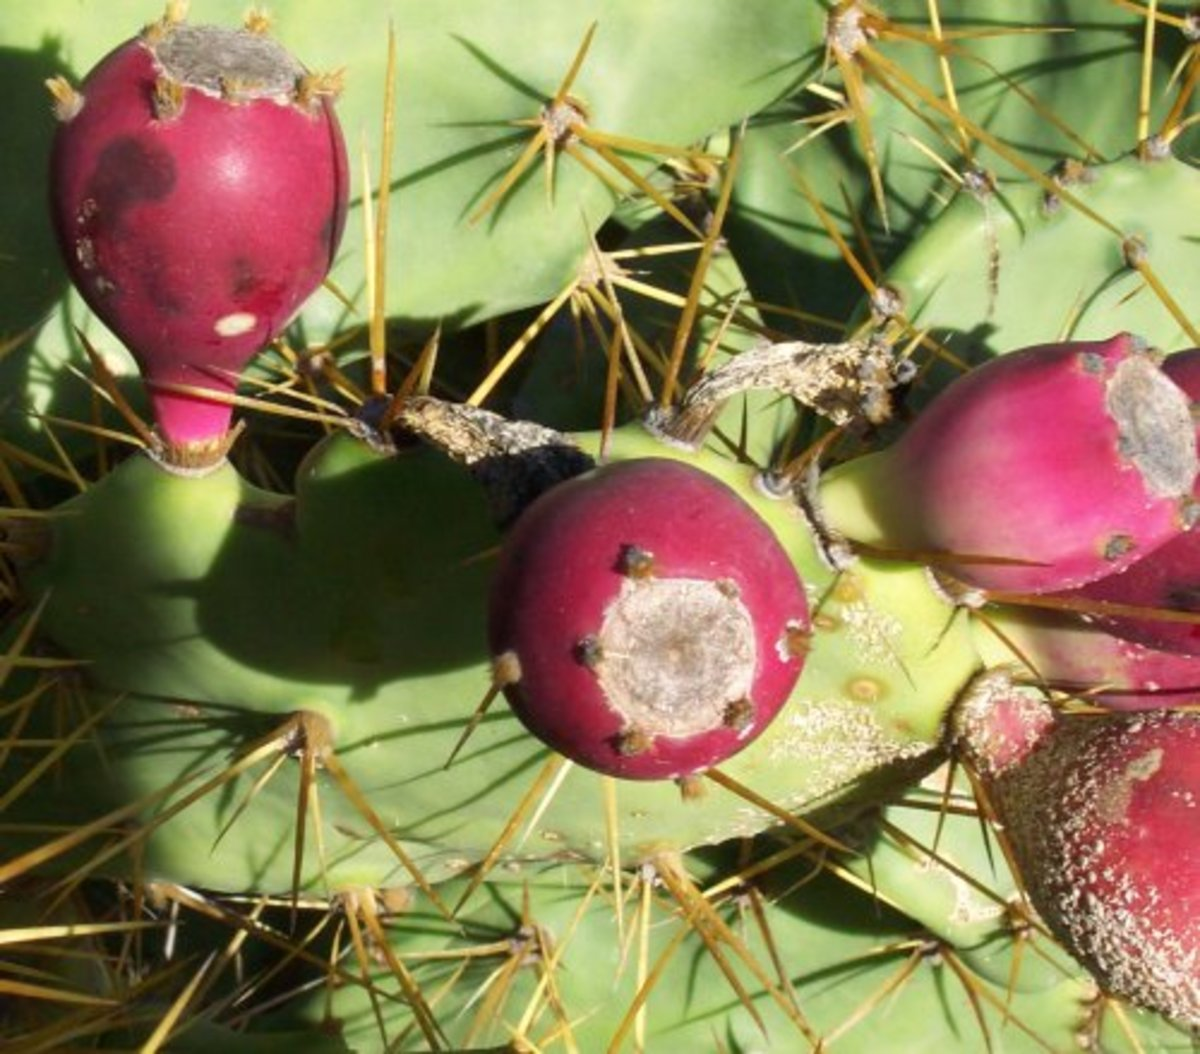 Prickly Pears Photo by Steve Andrews